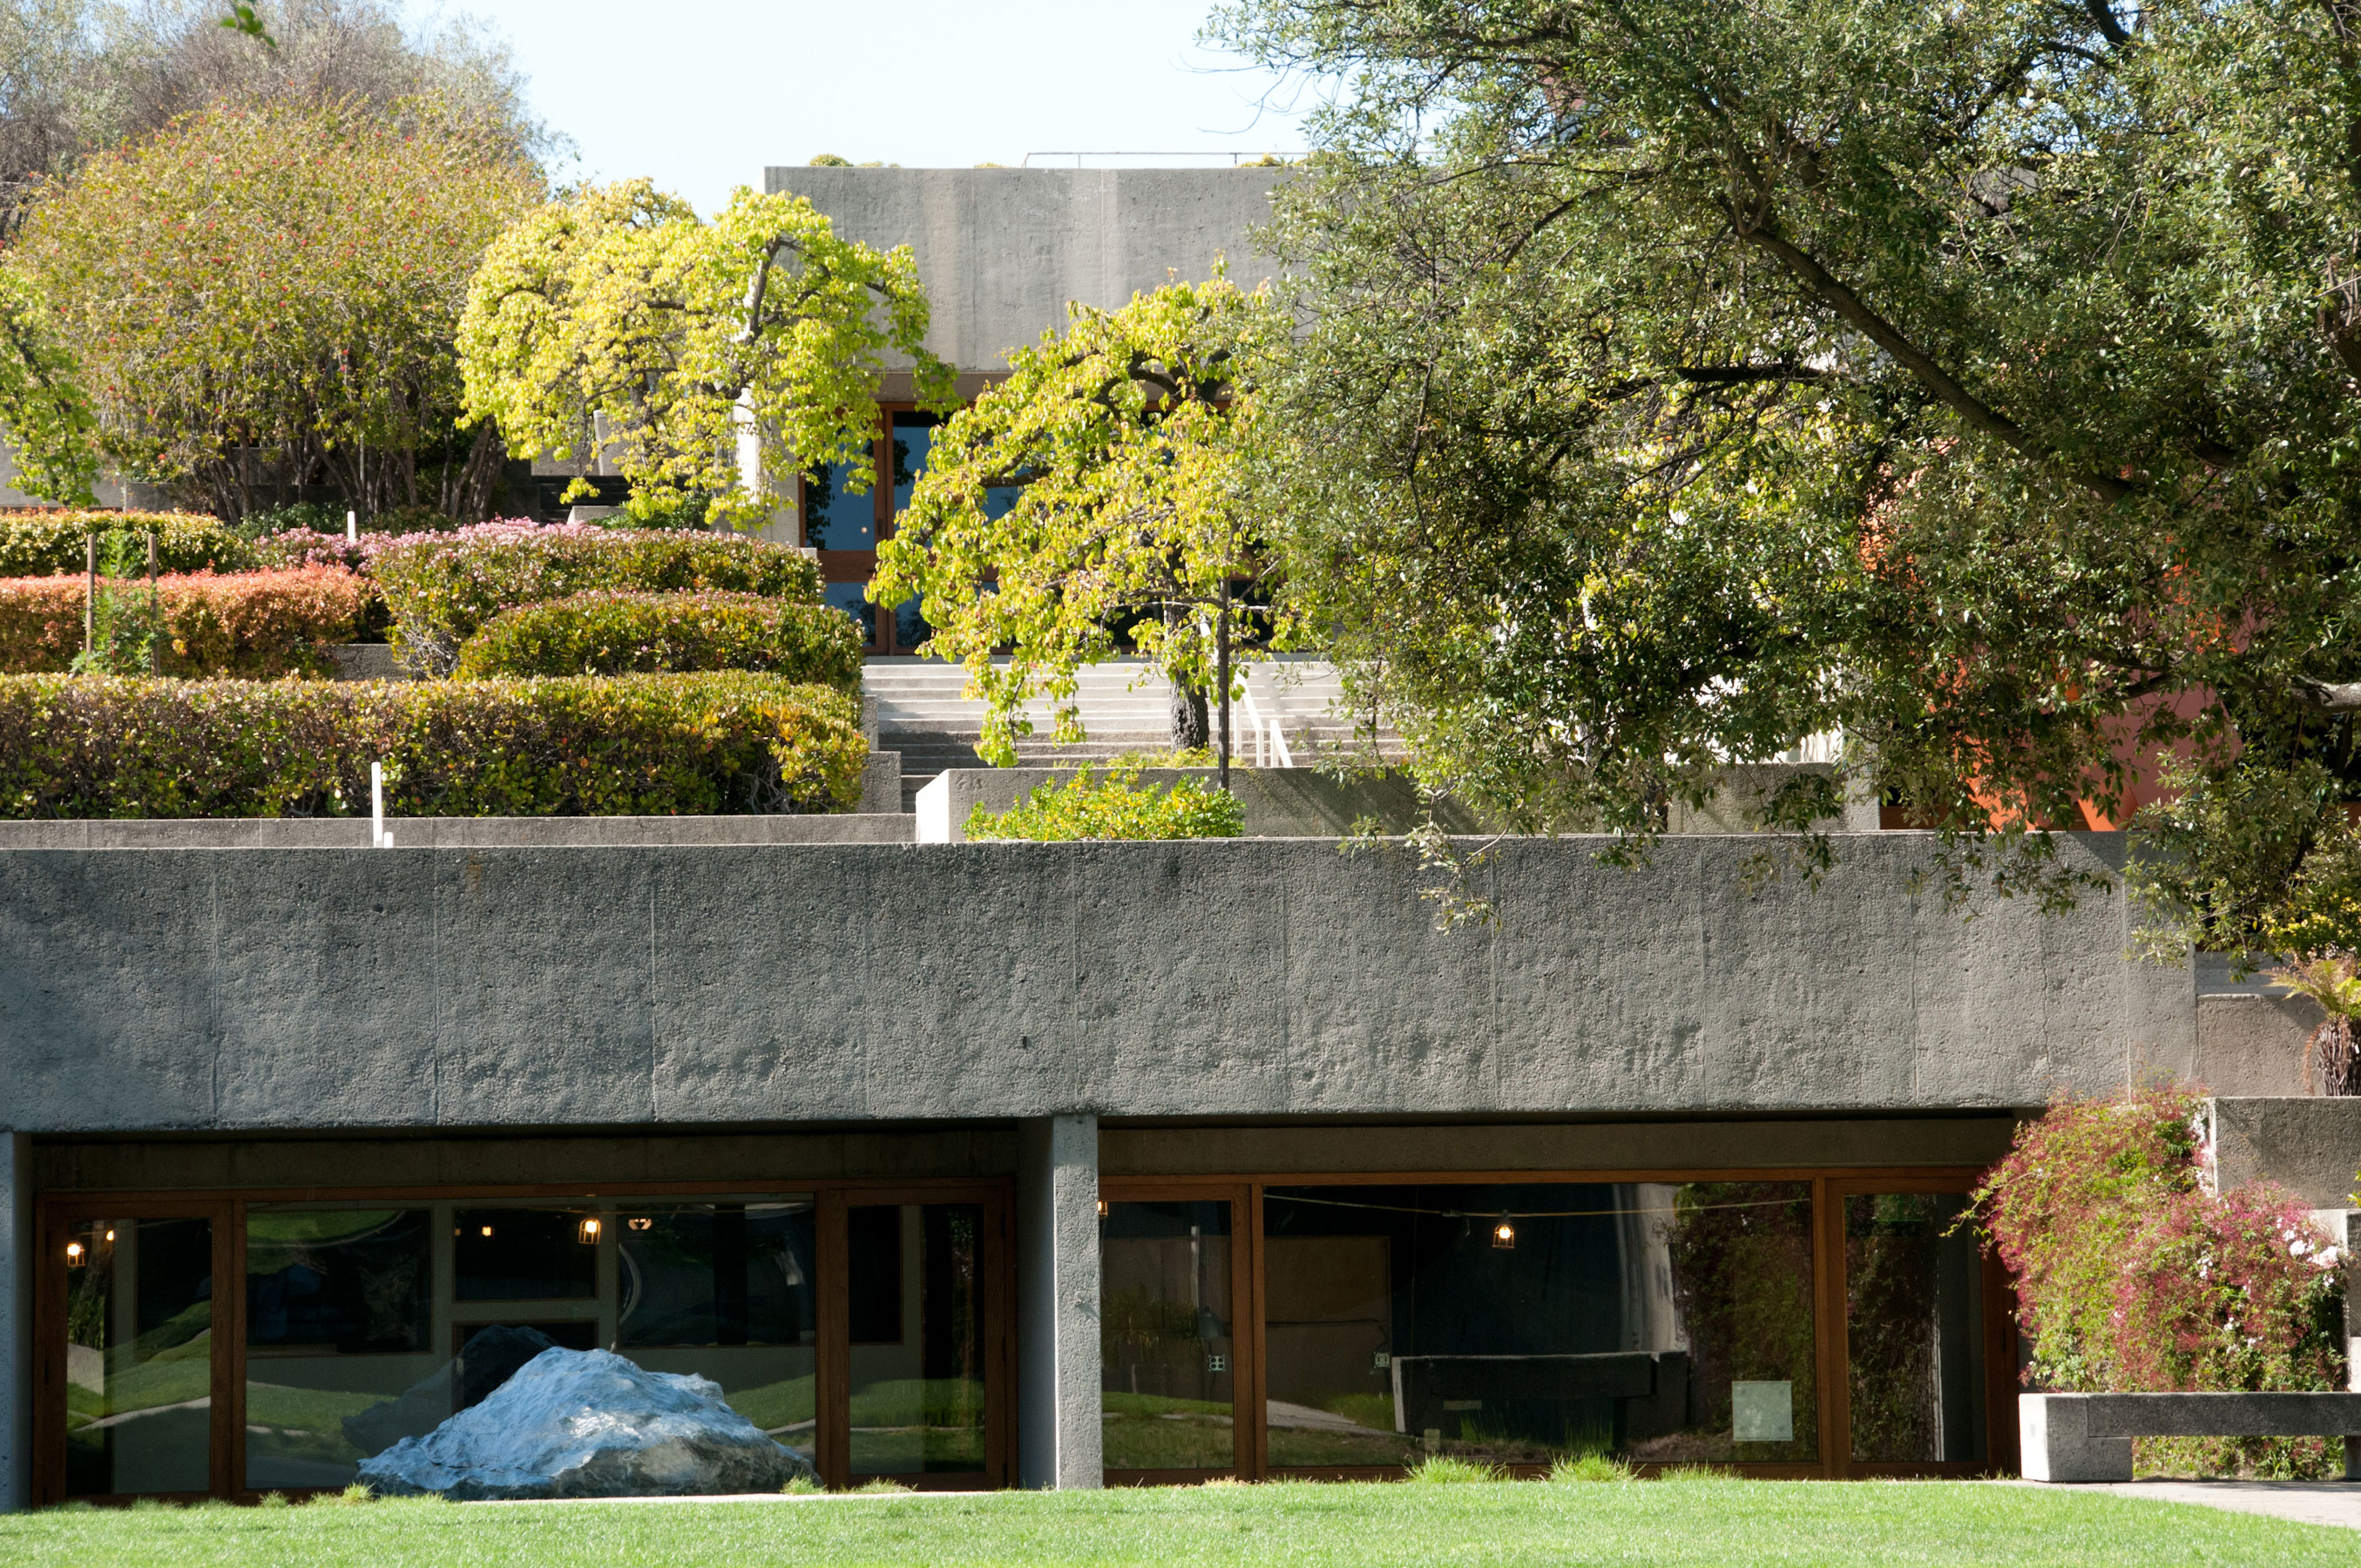 View into the museum from the terraced gardens at OMCA in Oakland